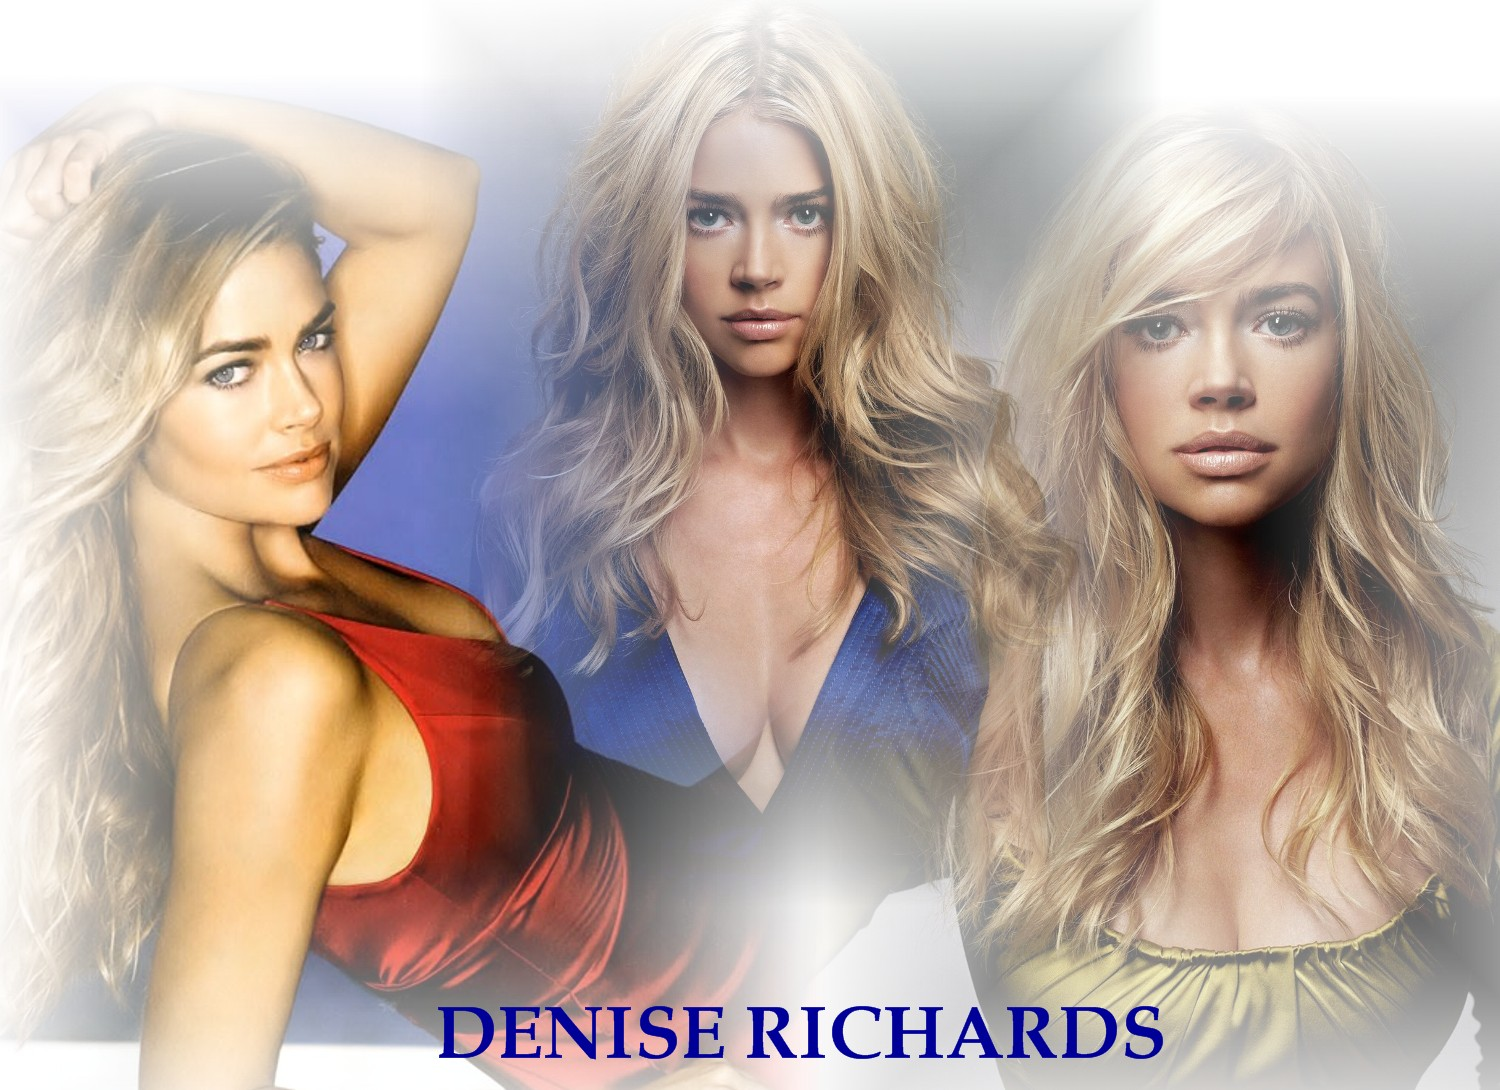 Denise richards 23